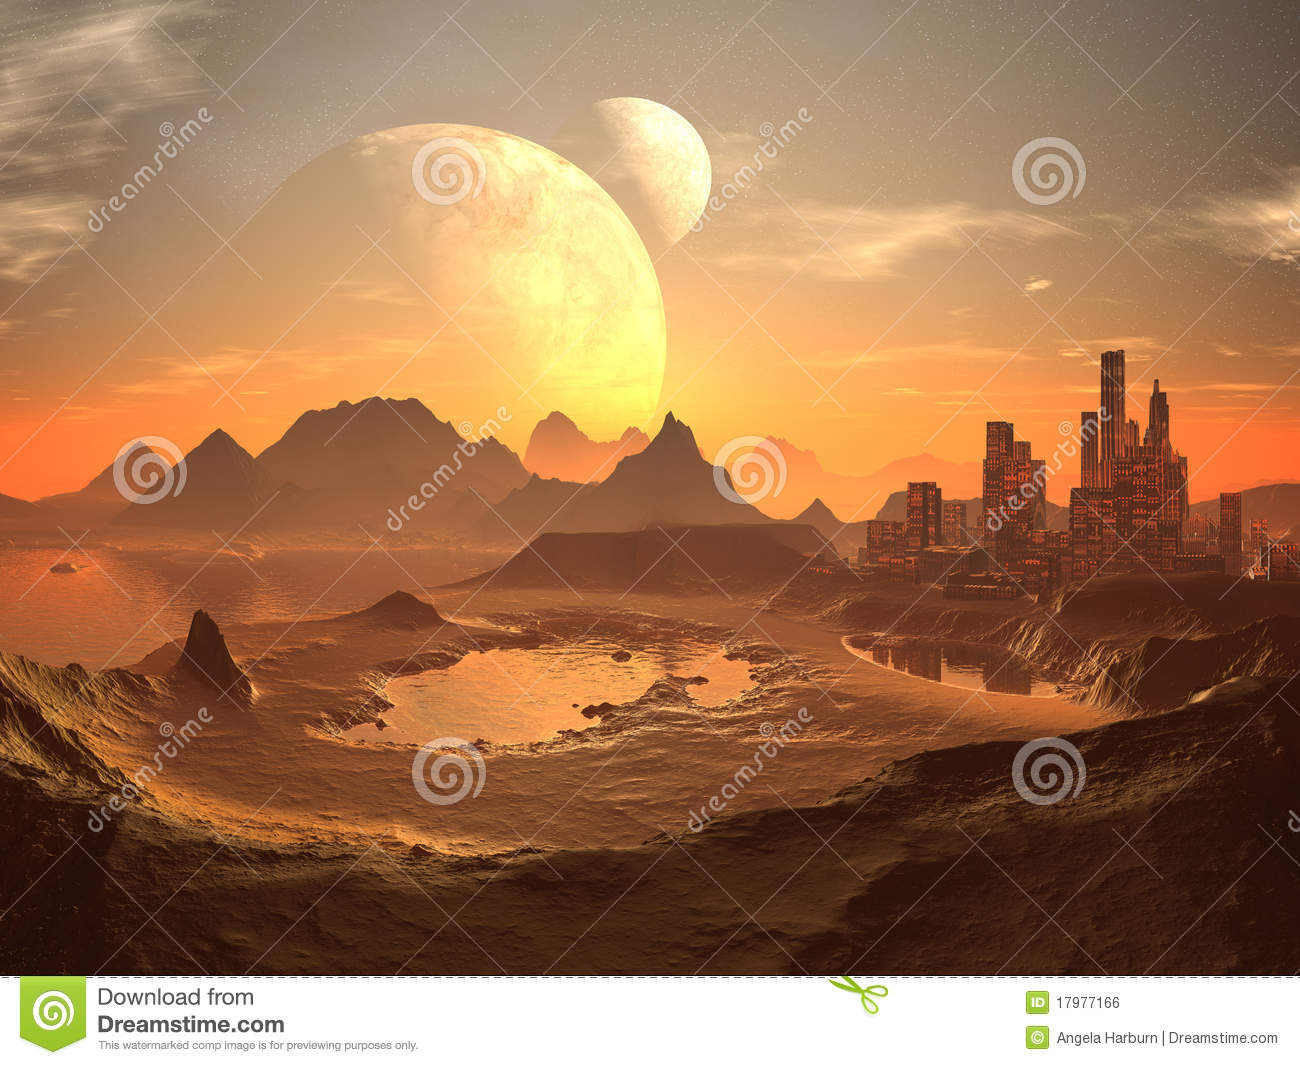 Sweet twins royalty free stock photo image 10320675 - Twin Moons Over Desert City With Pyramids Royalty Free Stock Image